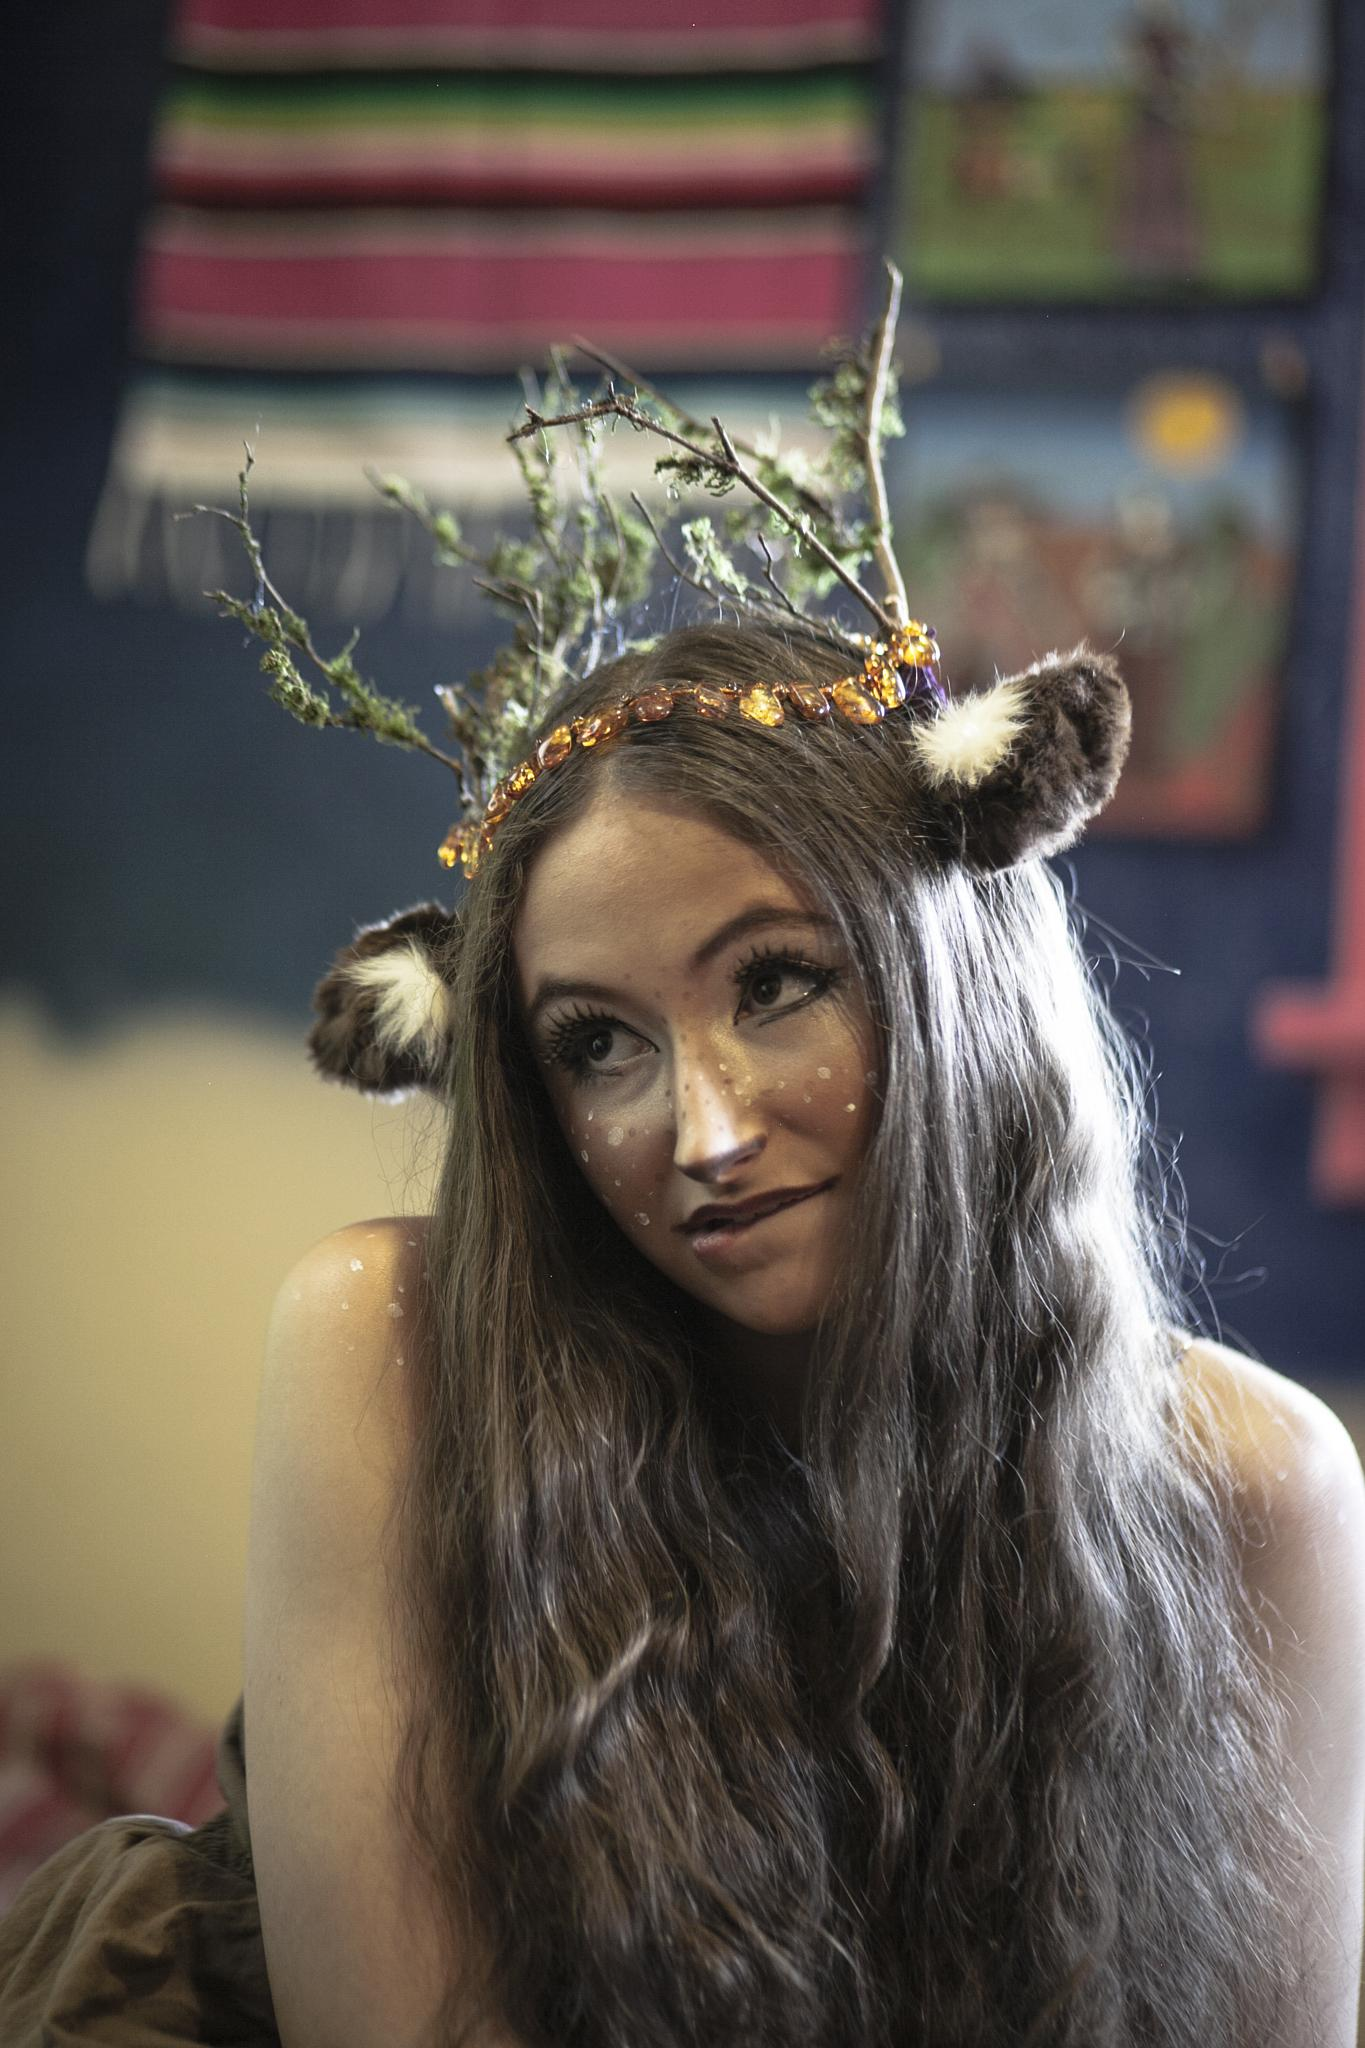 Actress Fawn being cute Behind the scenes of Tooth by Angeline Shepard